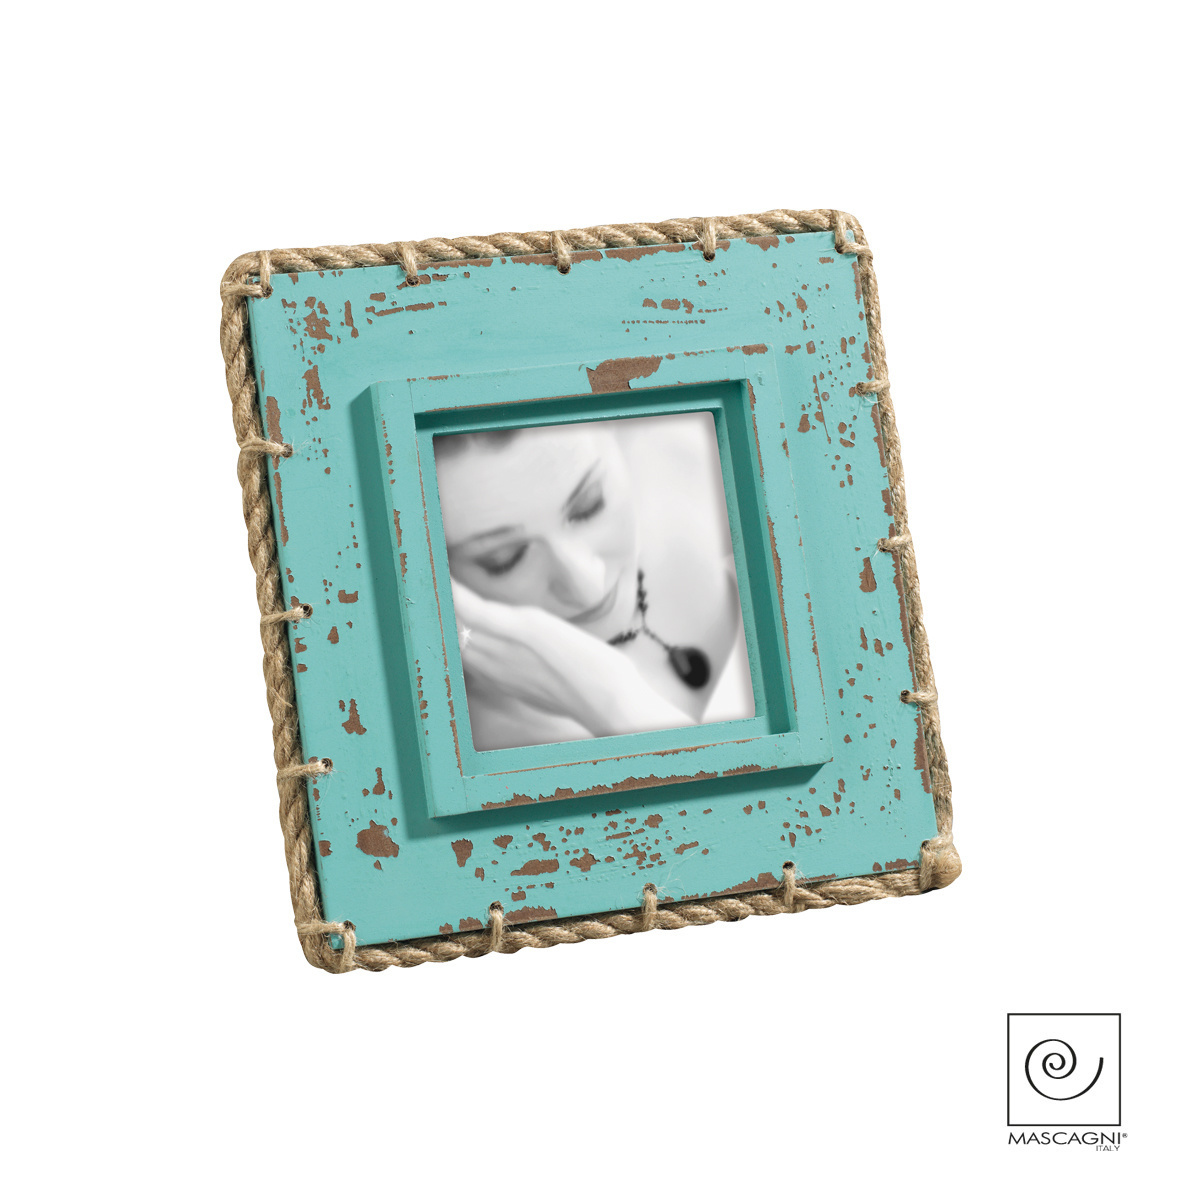 Art Mascagni A762 PHOTO FRAME 10X10 - COL.BLUE